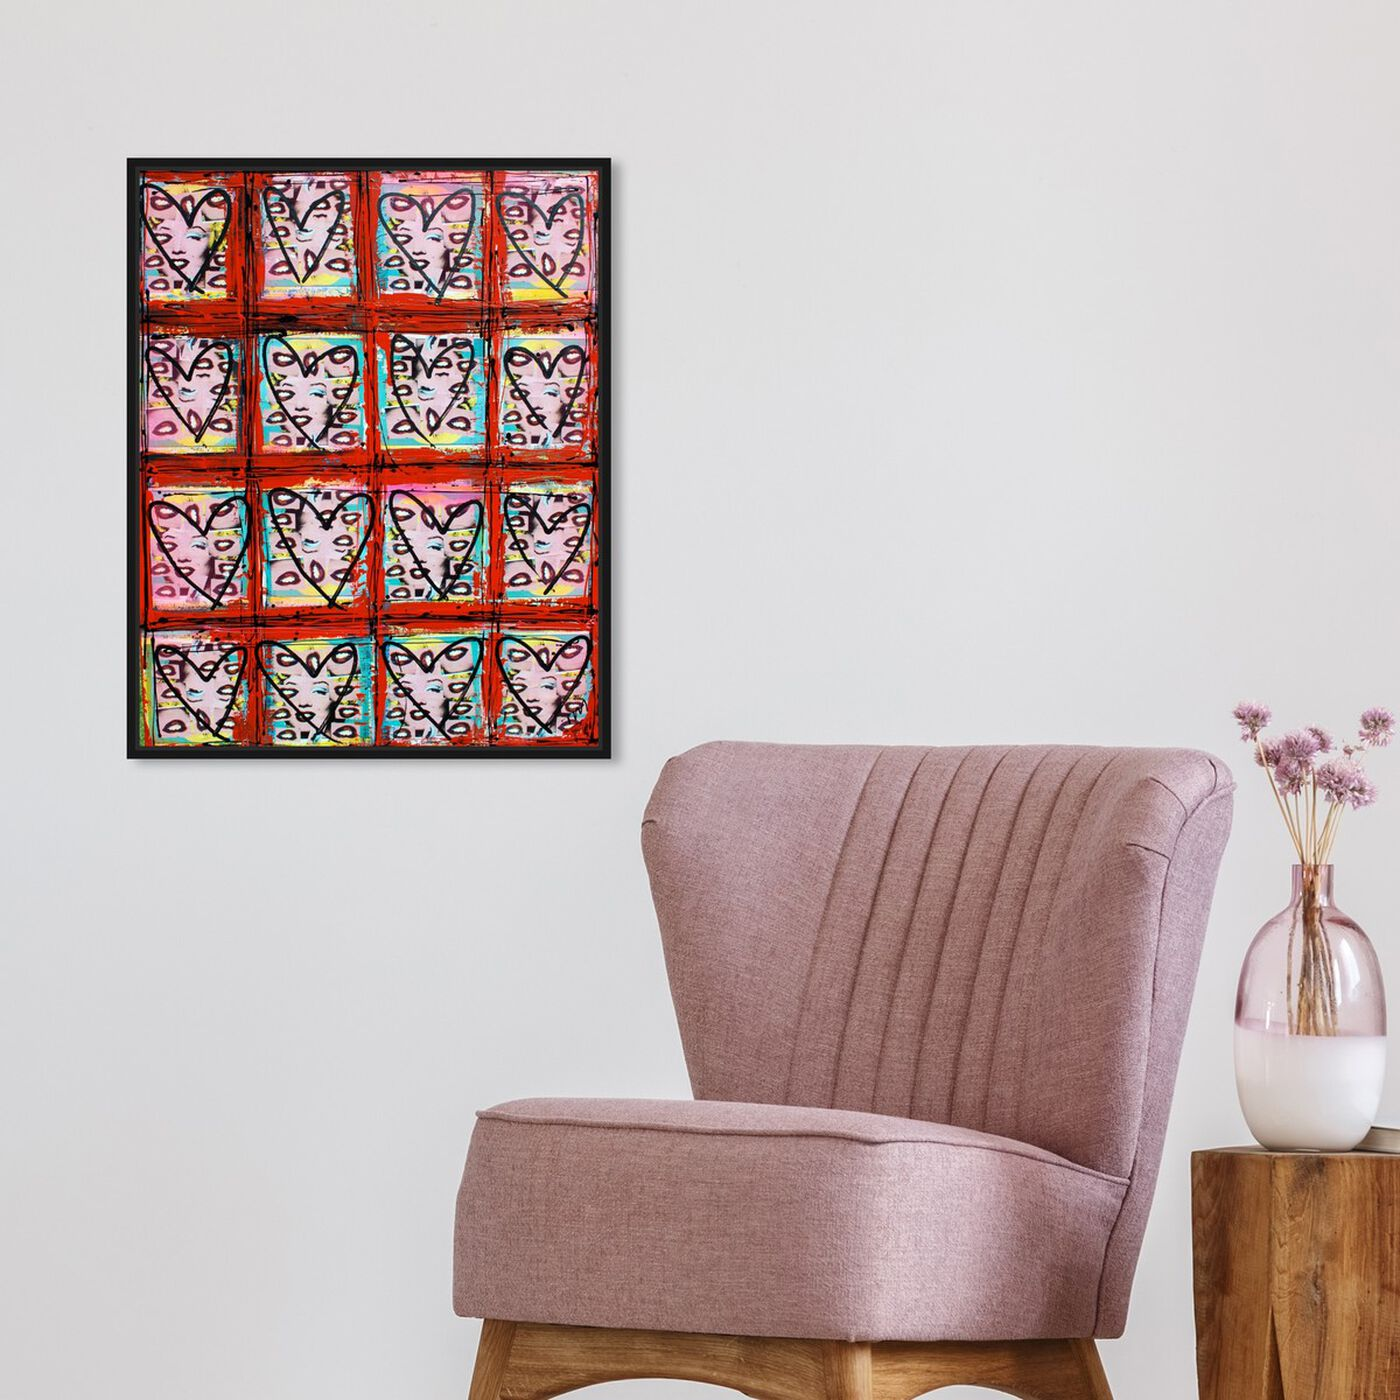 Hanging view of Lust Eyes by Tiago Magro featuring fashion and glam and hearts art.